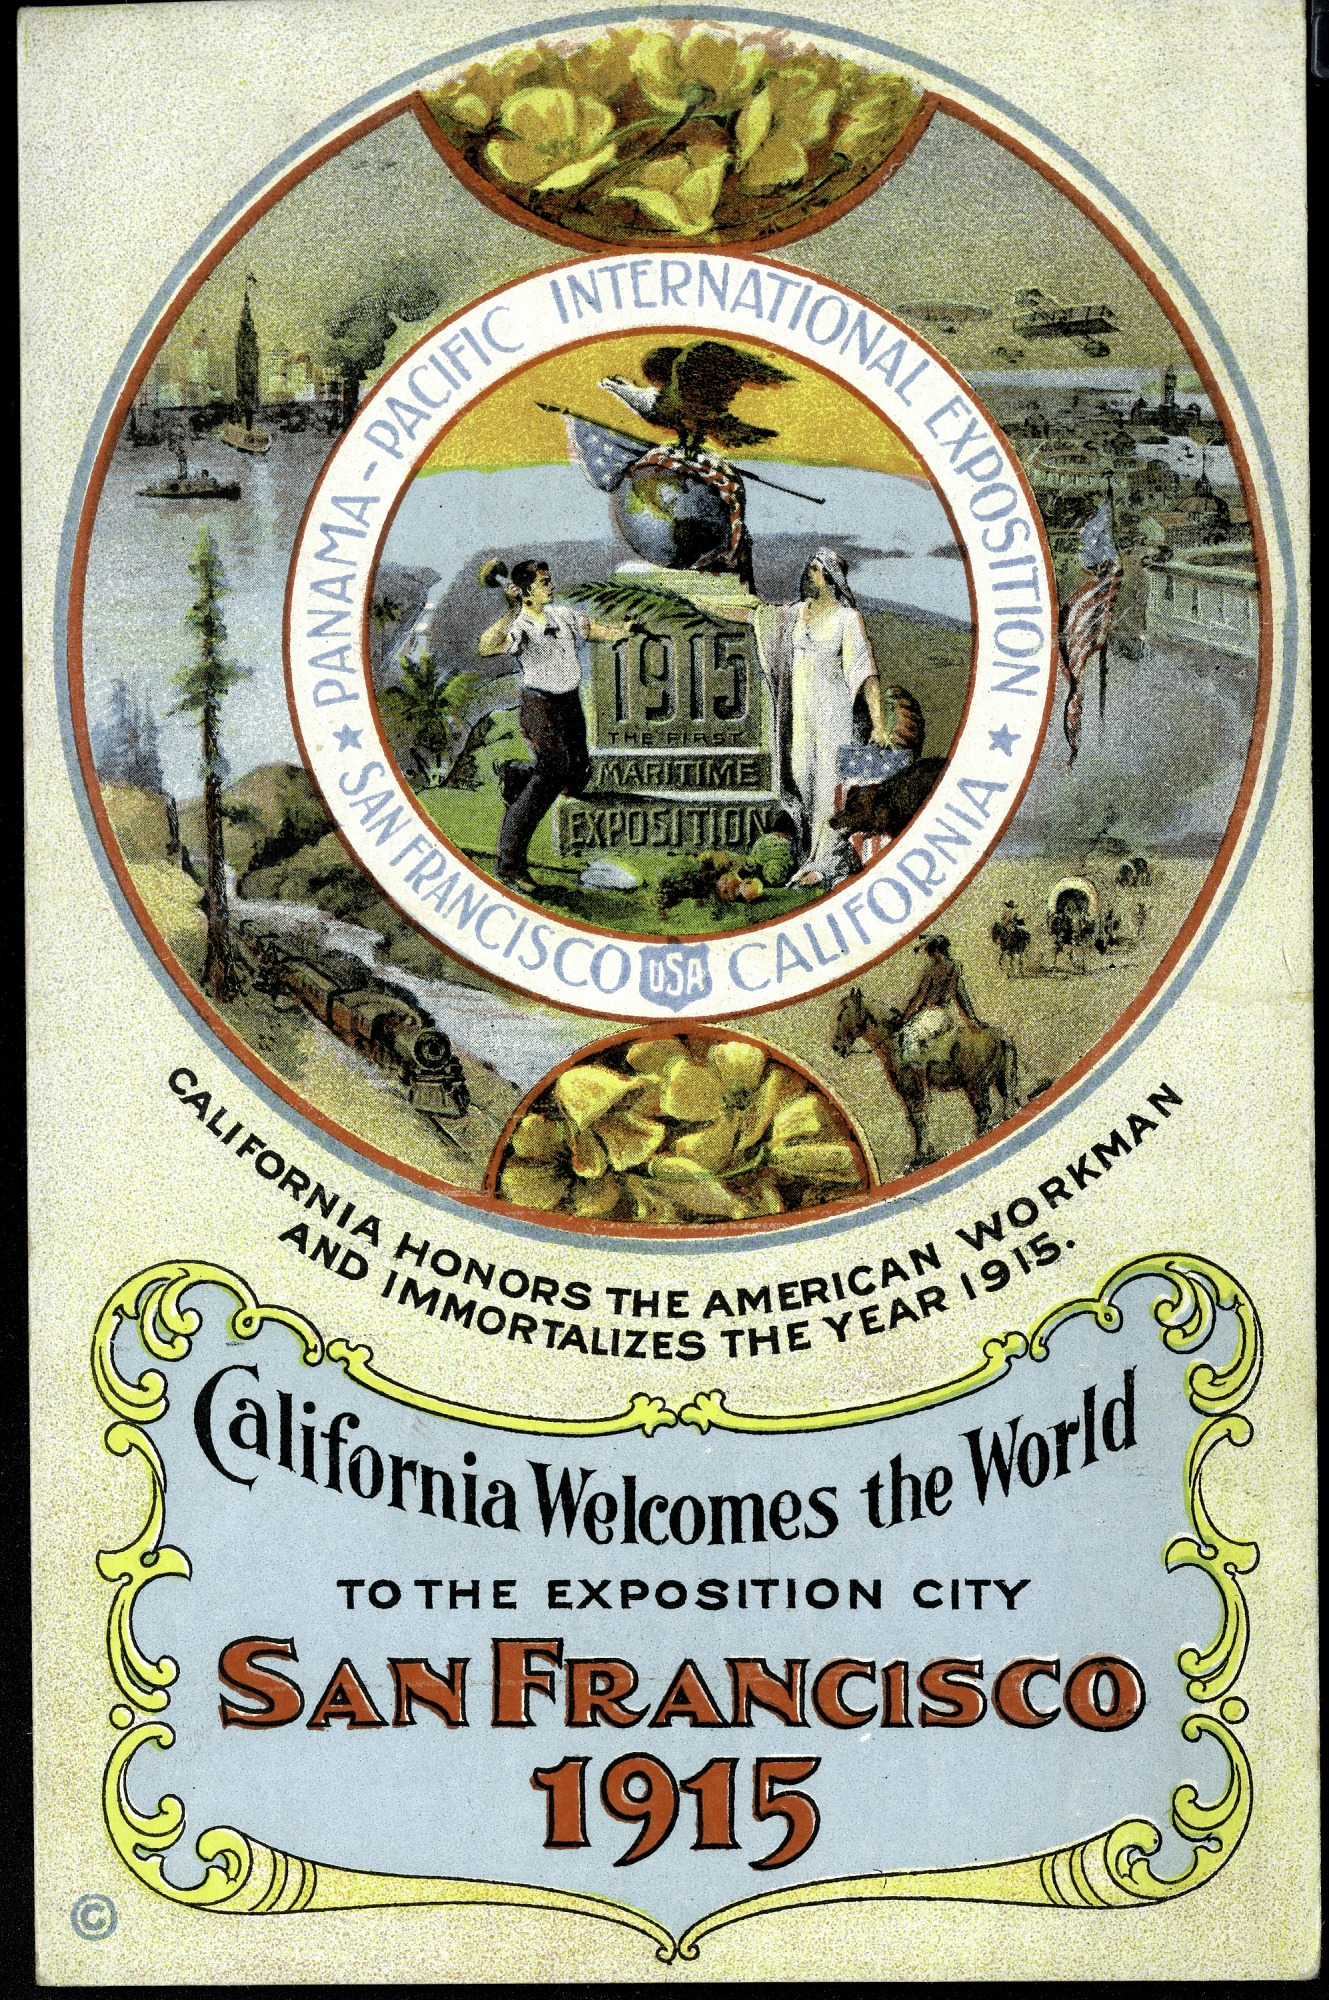 Workman Postcard from the Panama-Pacific Exposition